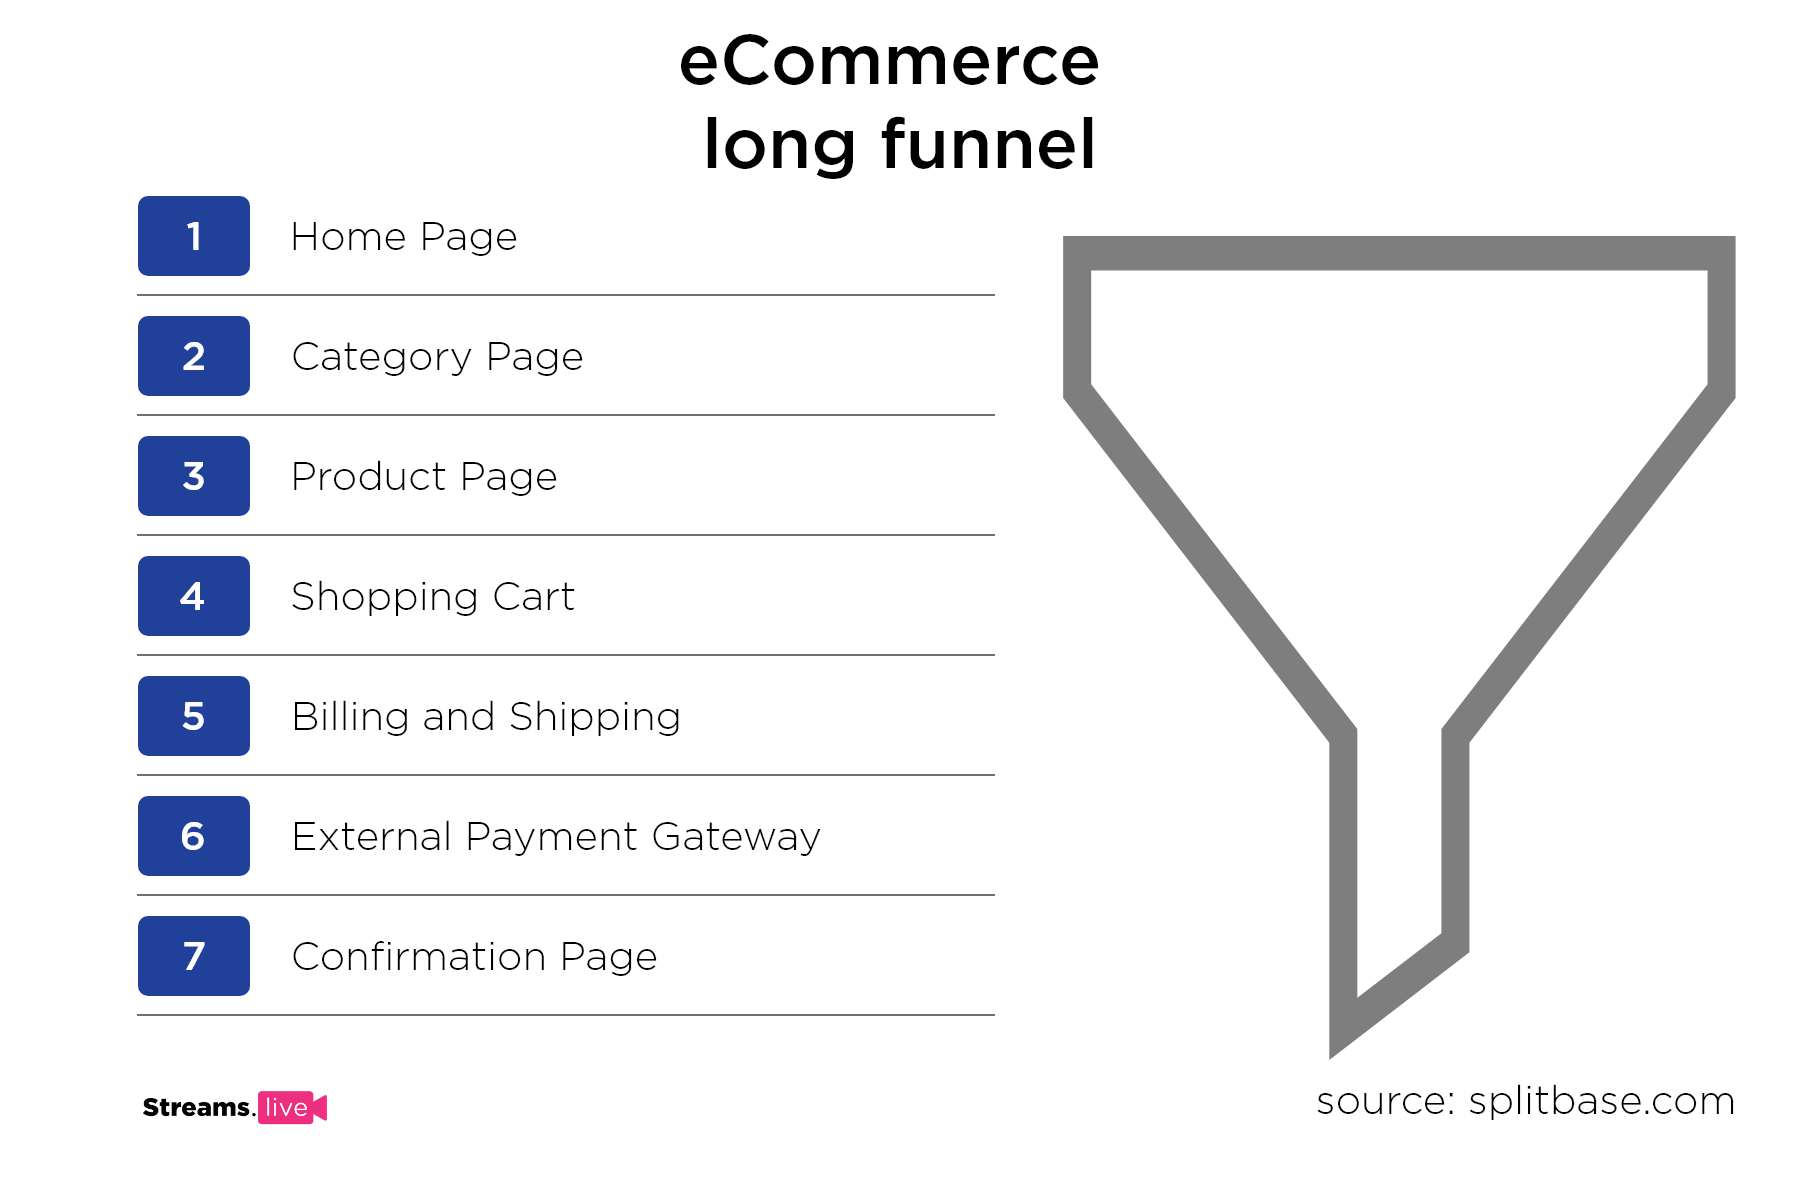 image showing ecommerce long funnel